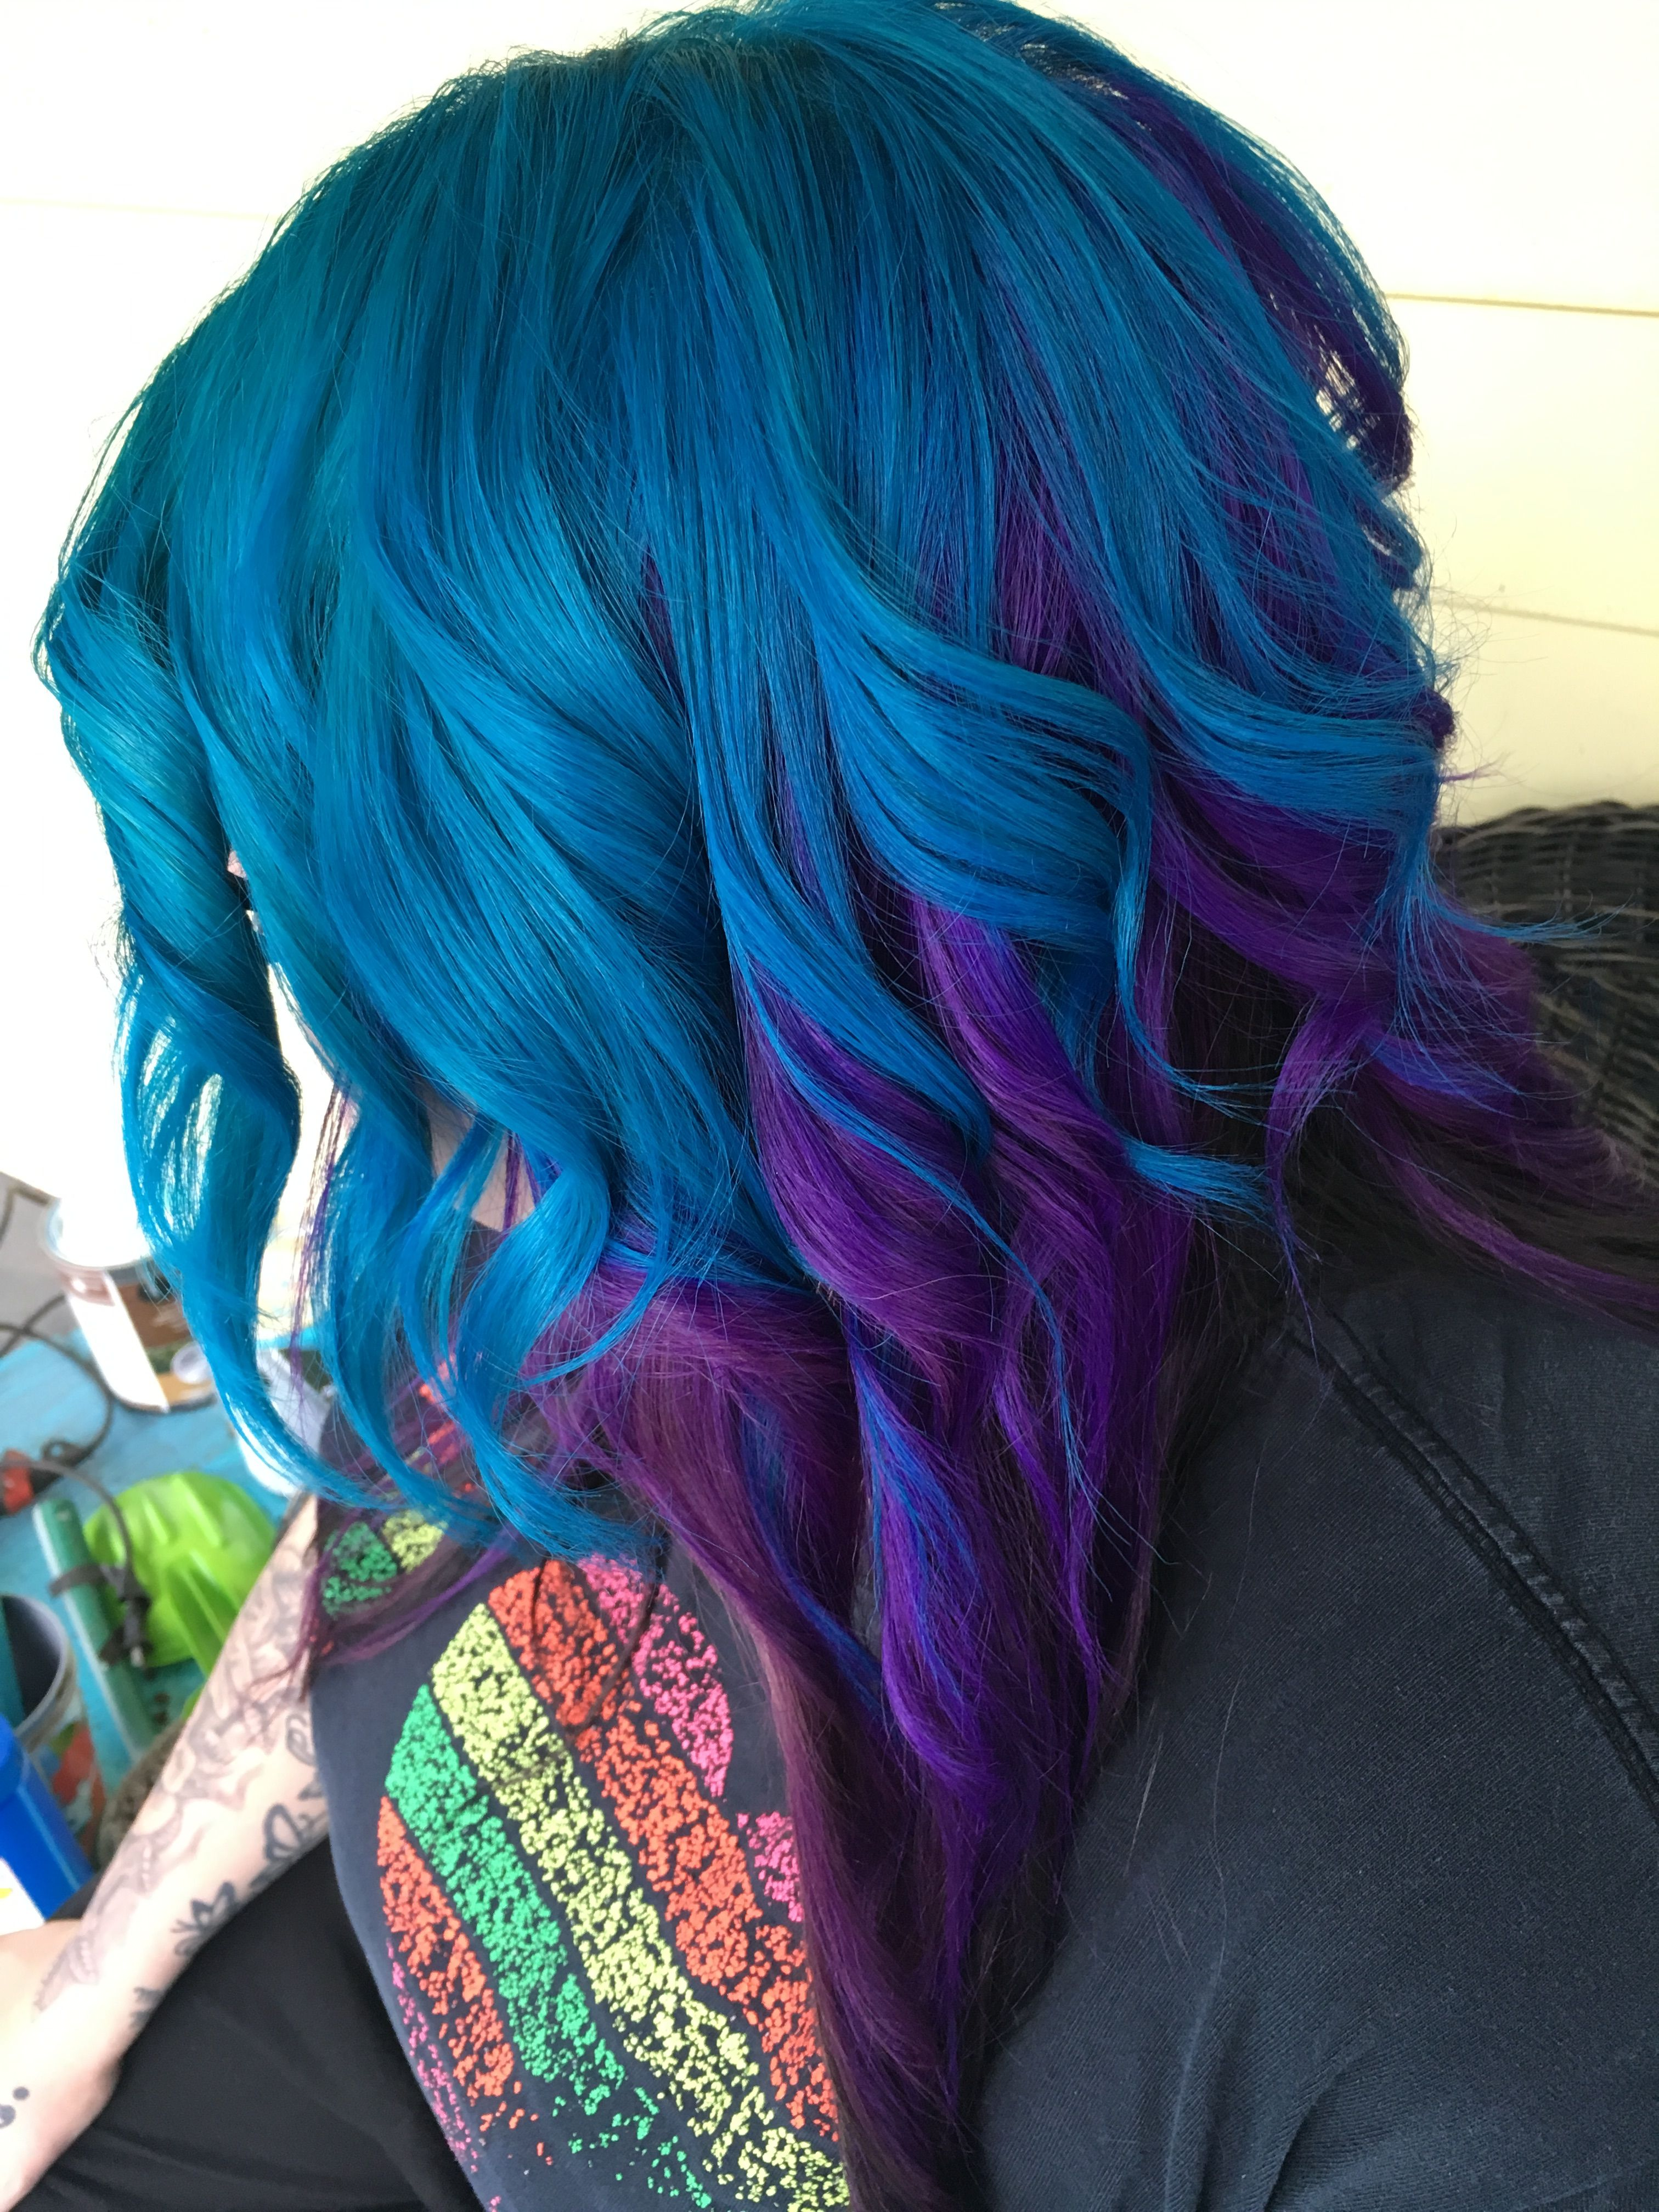 Pin By Kellebelle On Hair Color Pinterest Hair Coloring